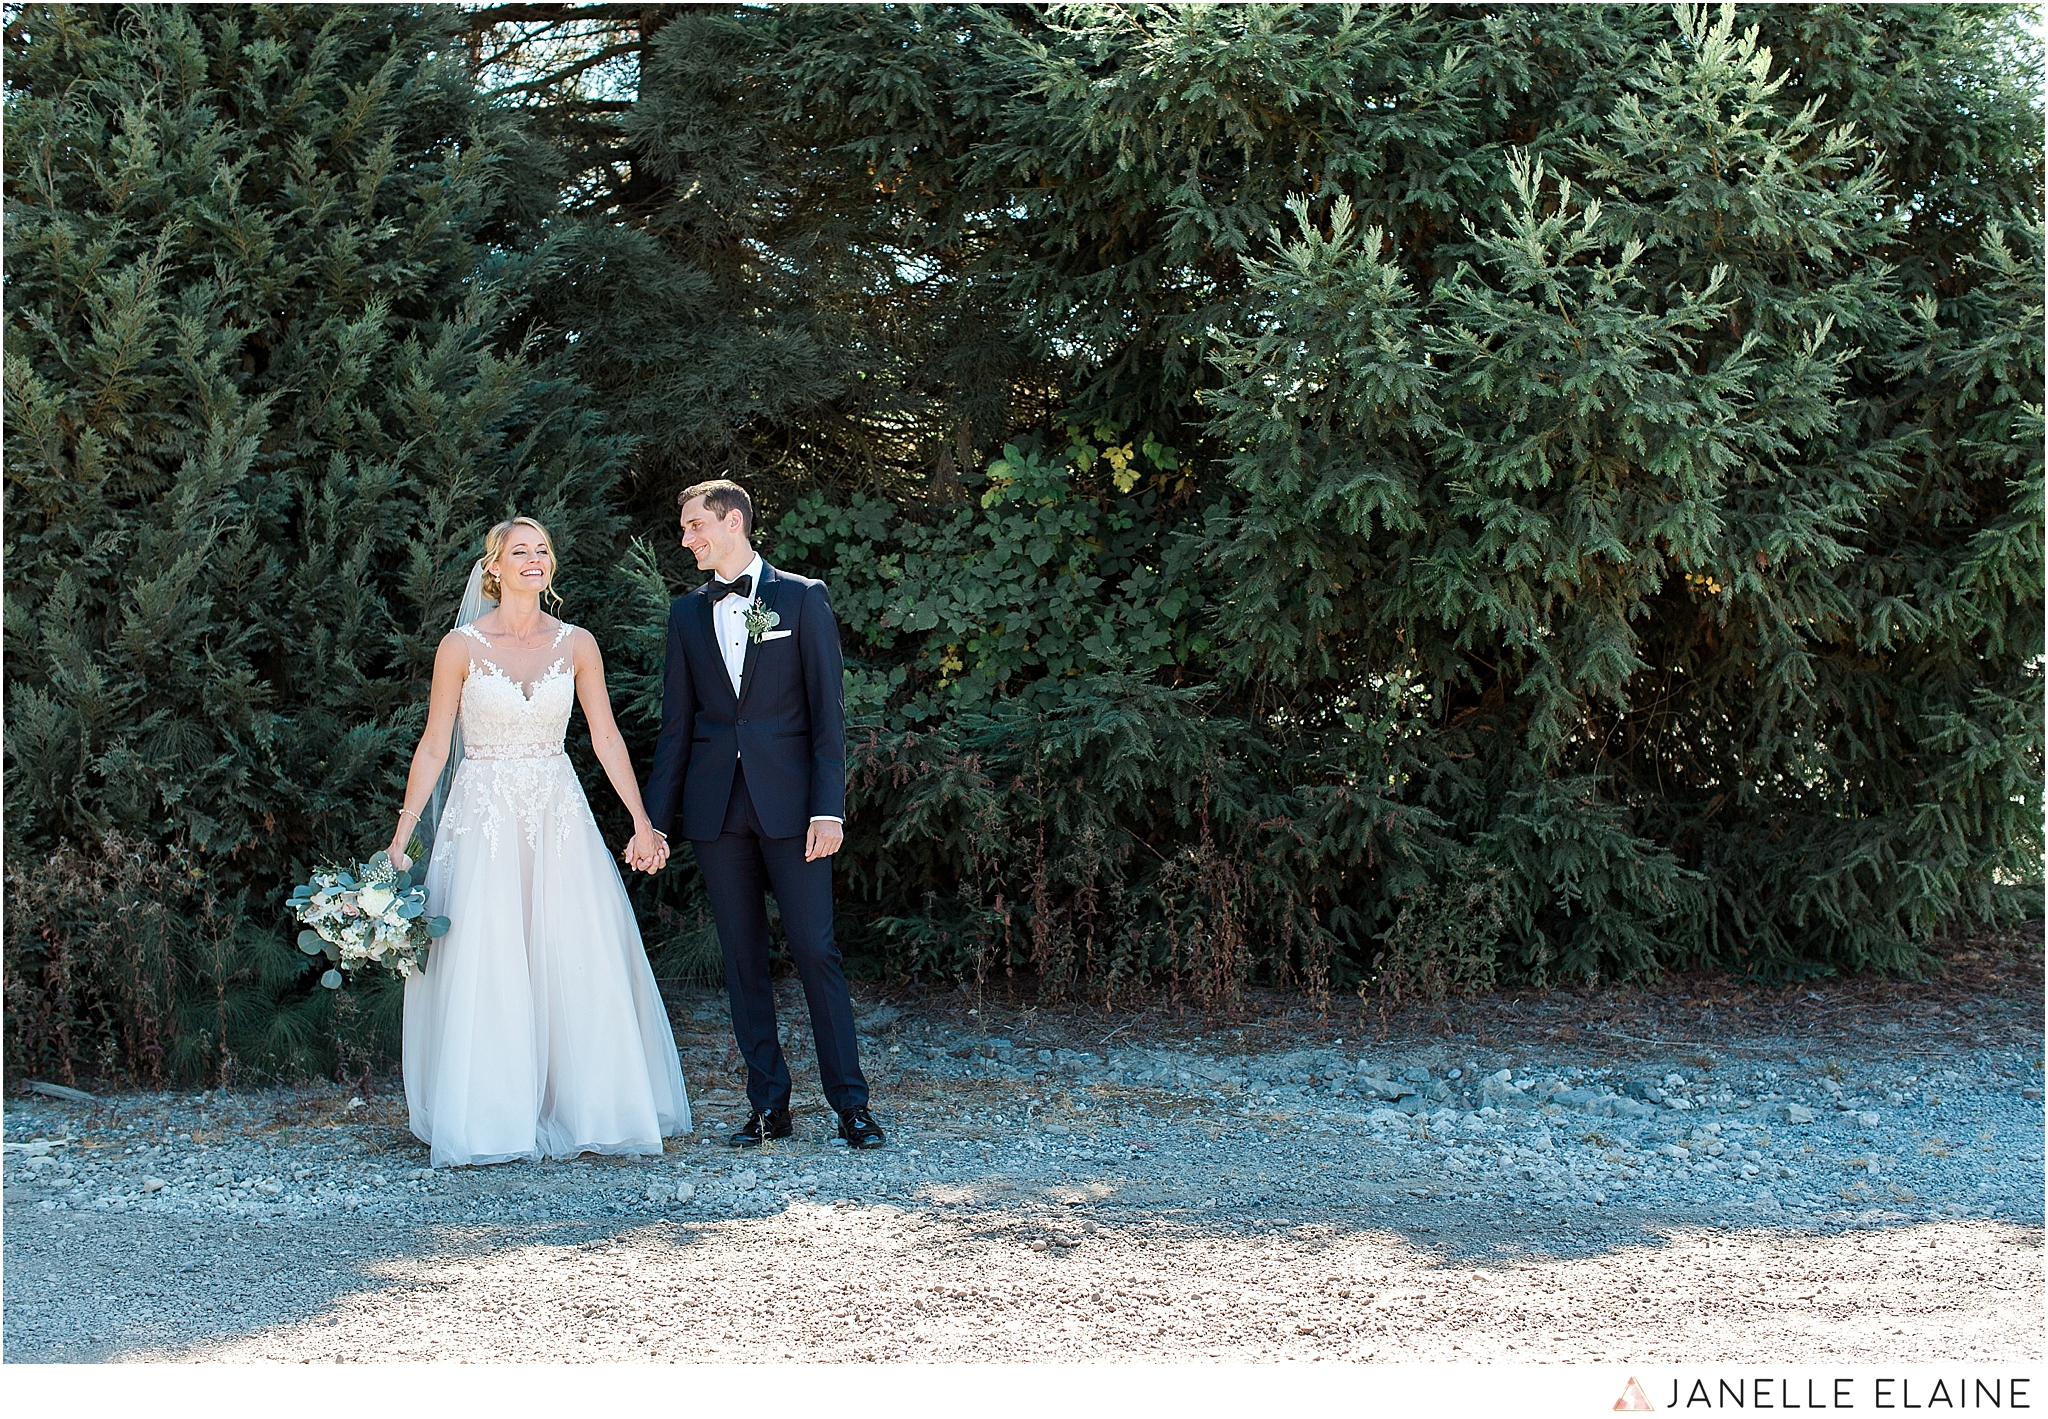 janelle elaine photography-carleton farms-washington-wedding-lake stevens-73.jpg